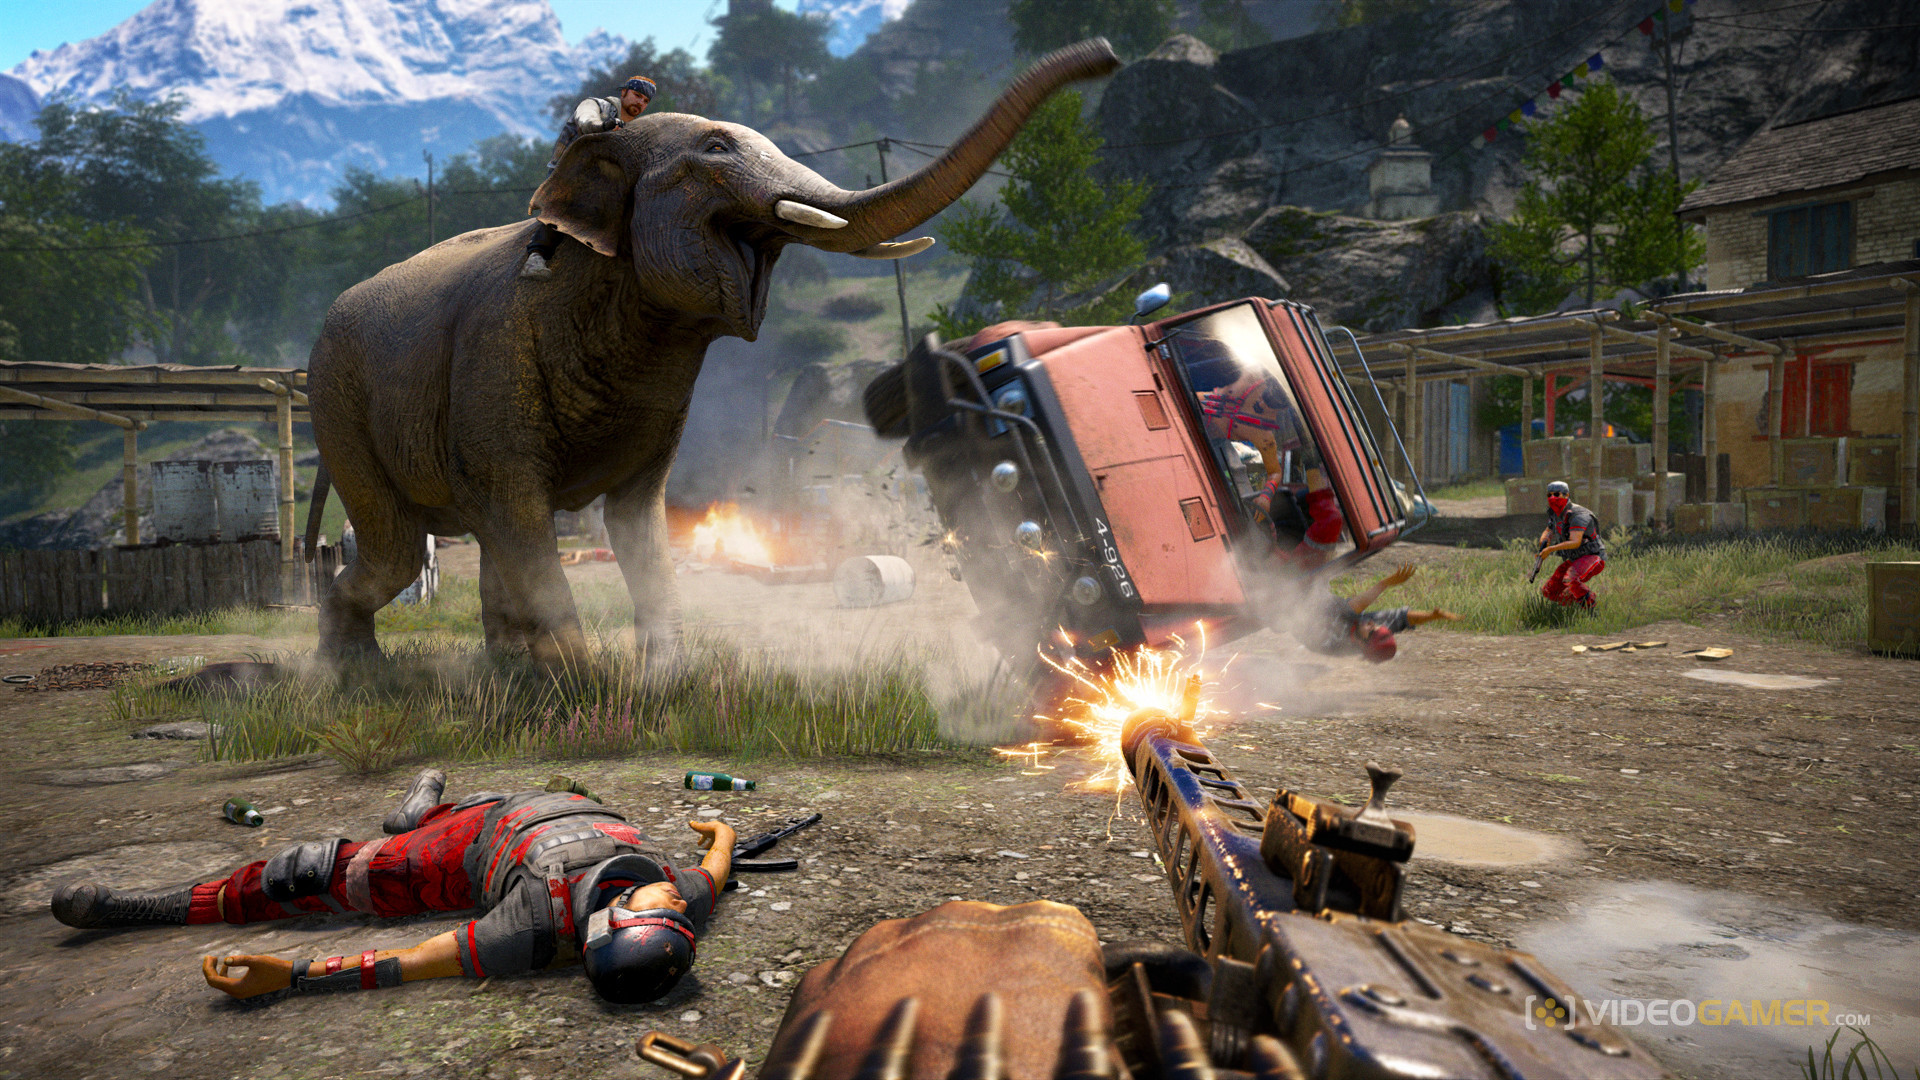 far cry 4 review - the word of ward